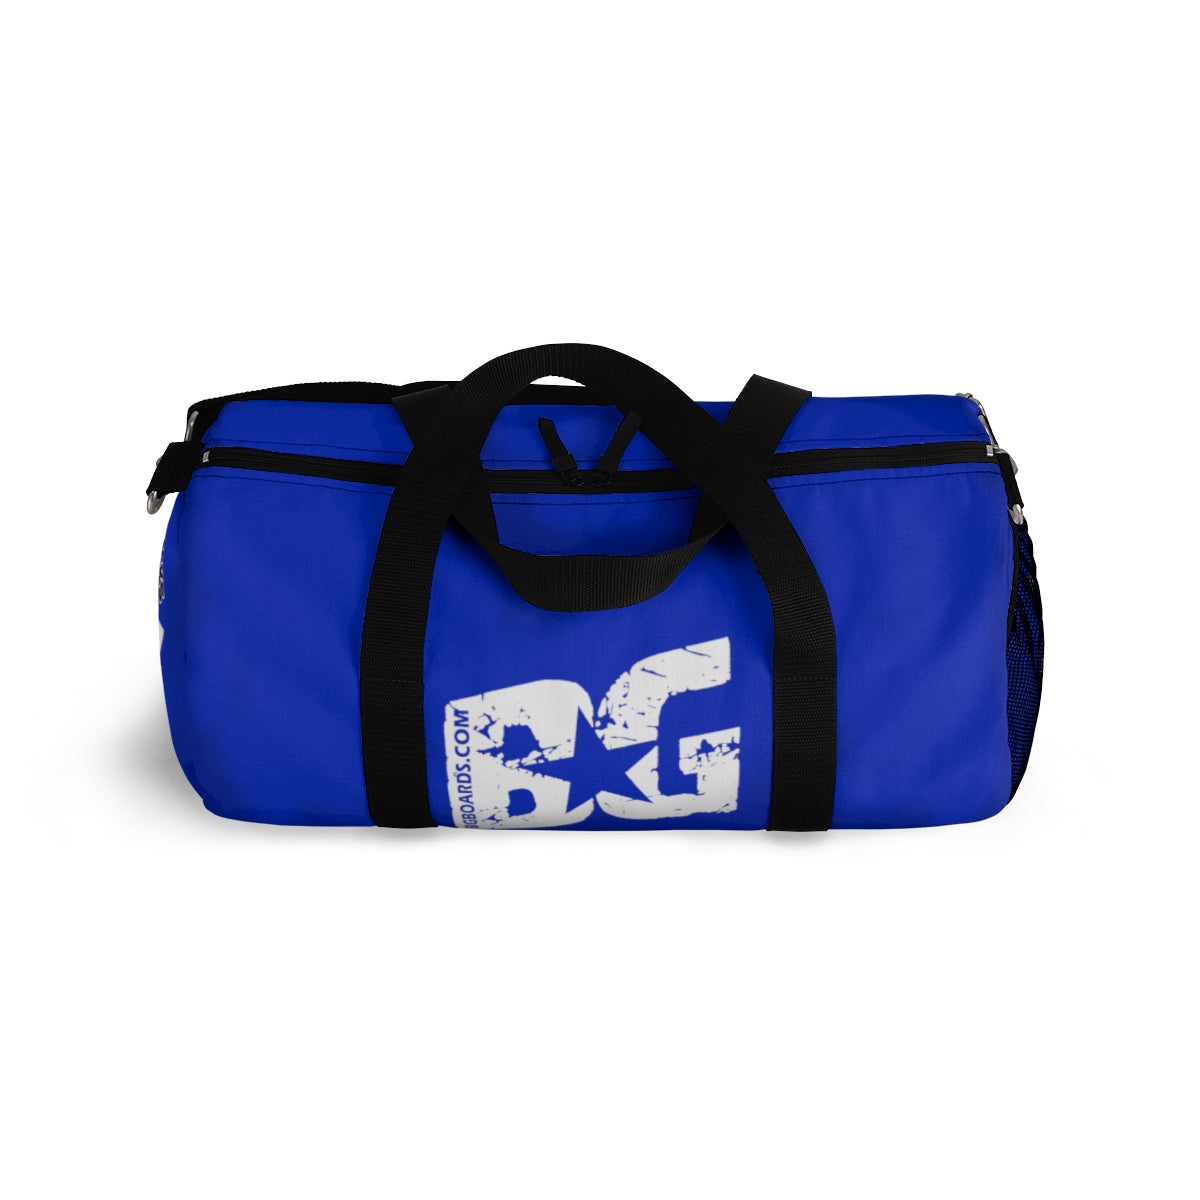 BG BIG SACK ROYAL DUFFLE BAG